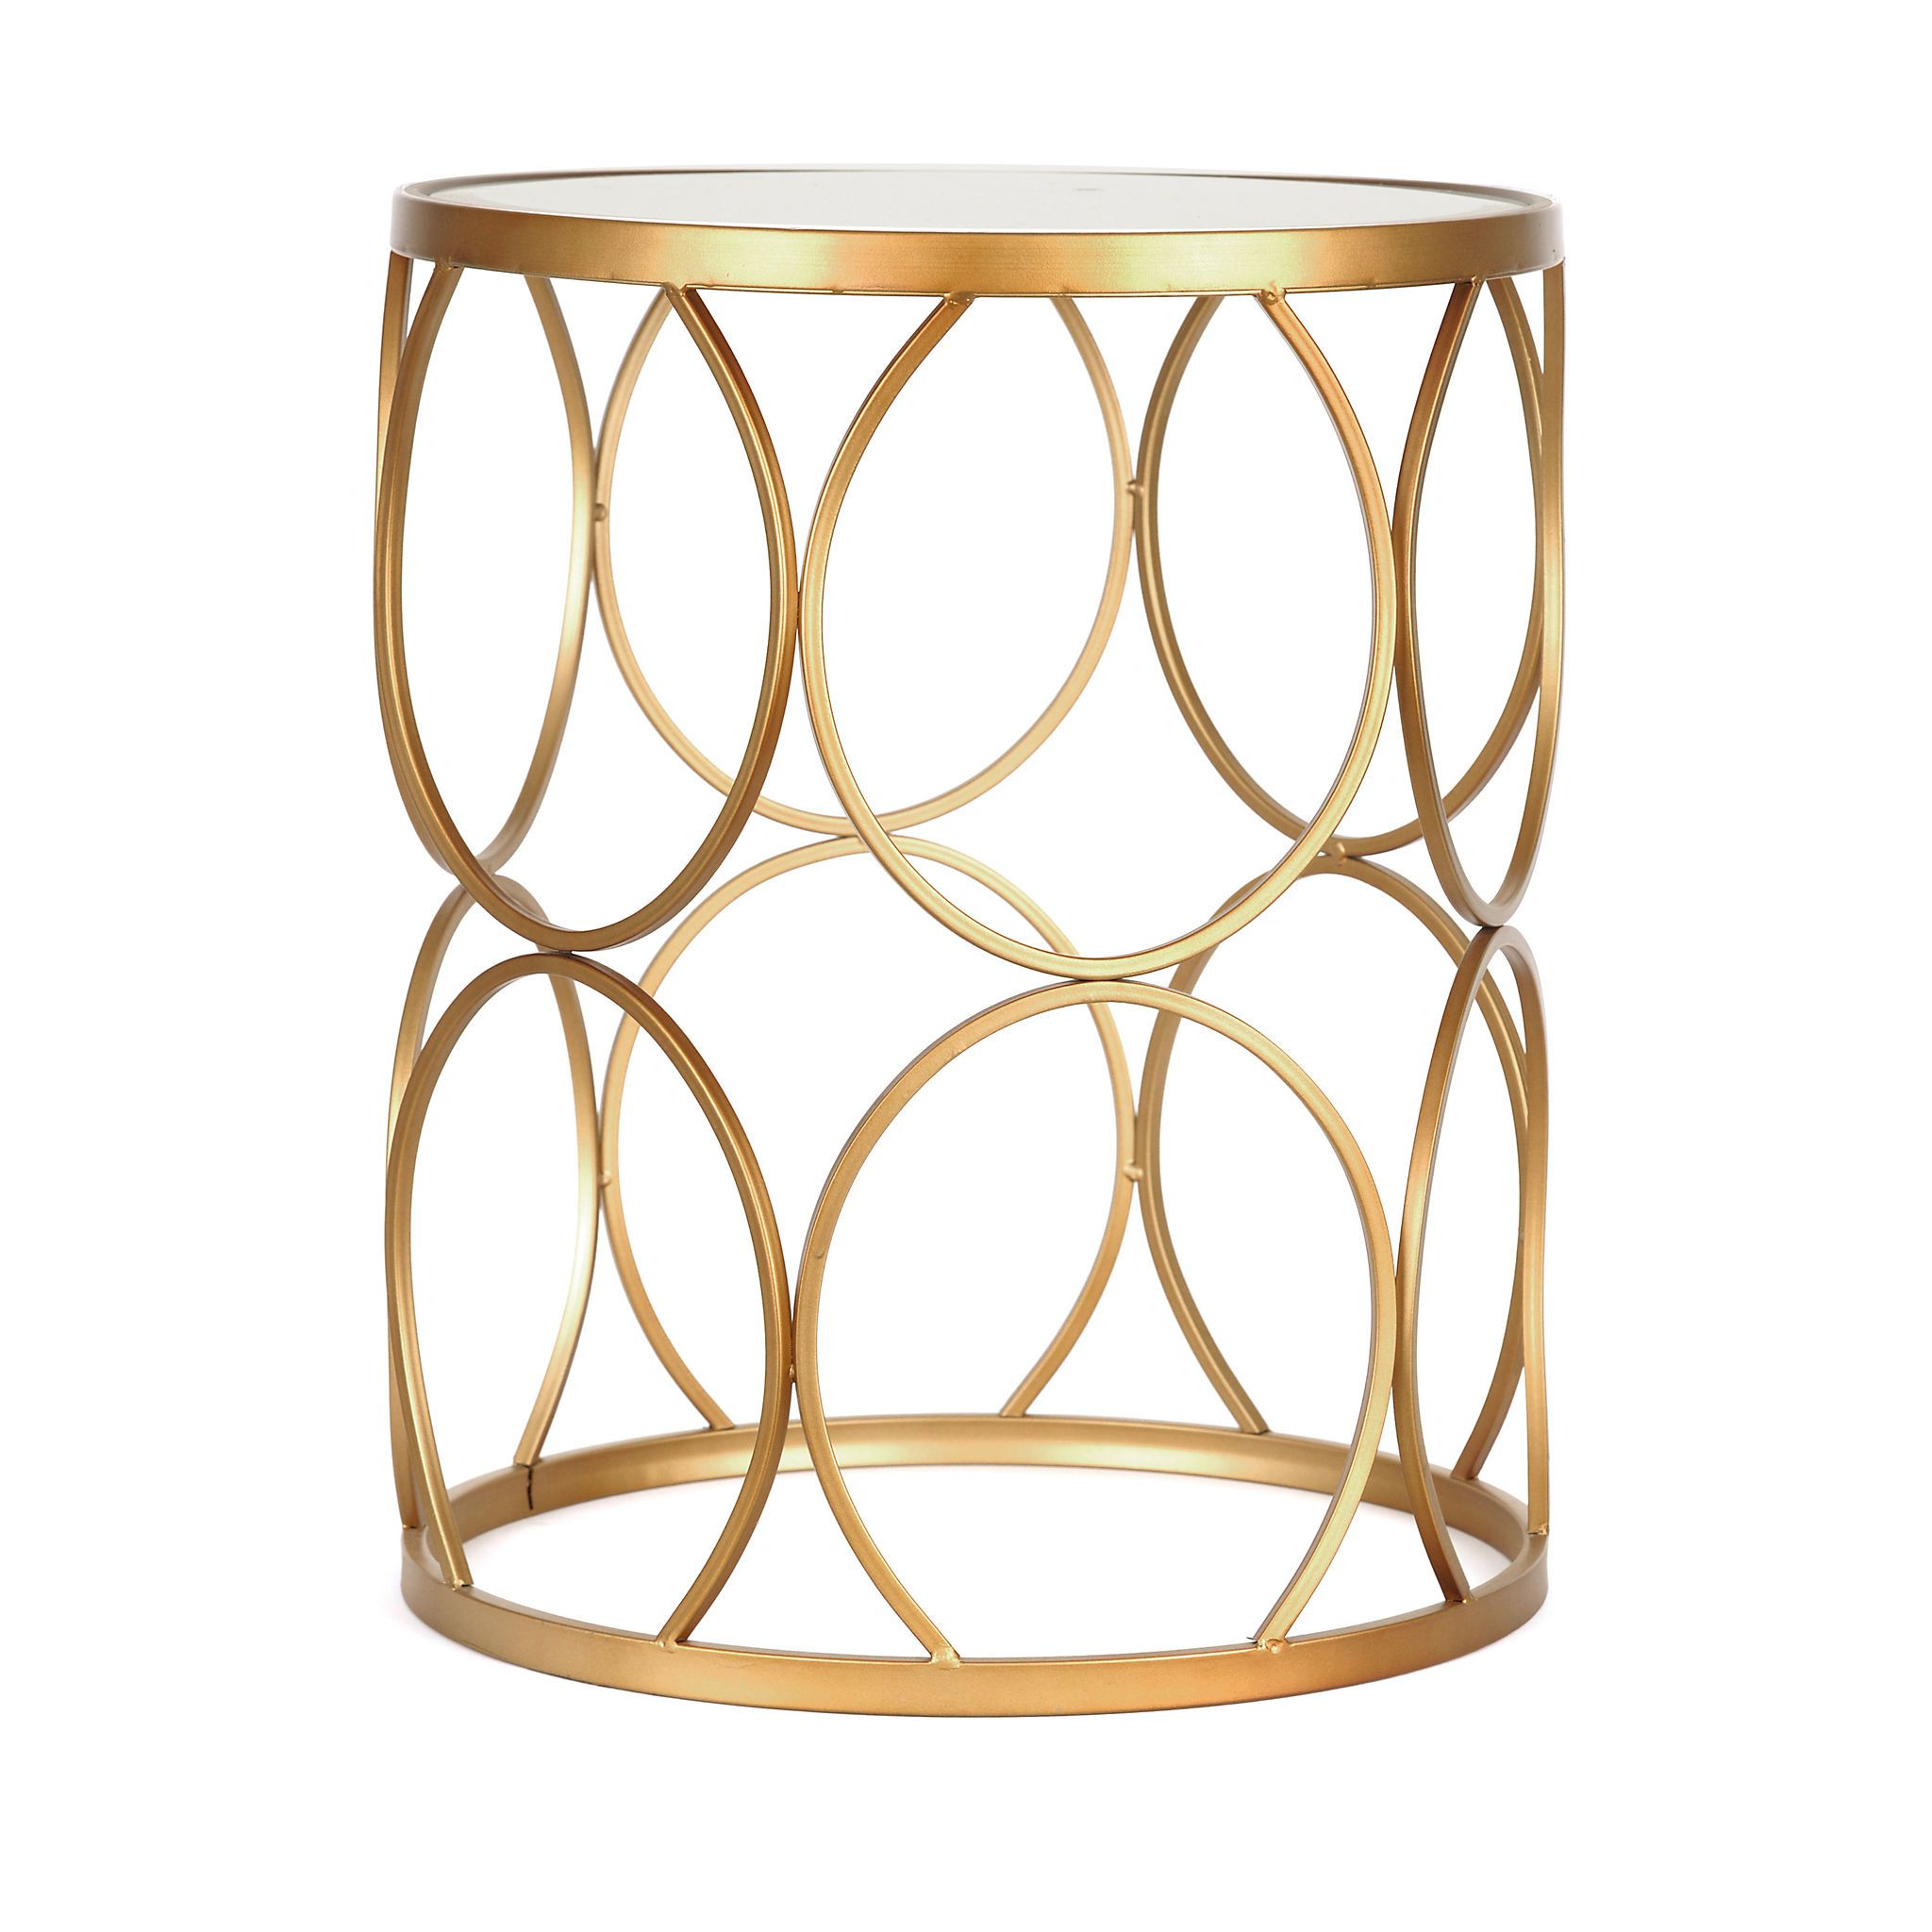 gold circles mirrored side table furniture accent kirklands oak lamp end tables dining room wall decor ideas unusual coffee patio swing crackle glass counter height kitchen with